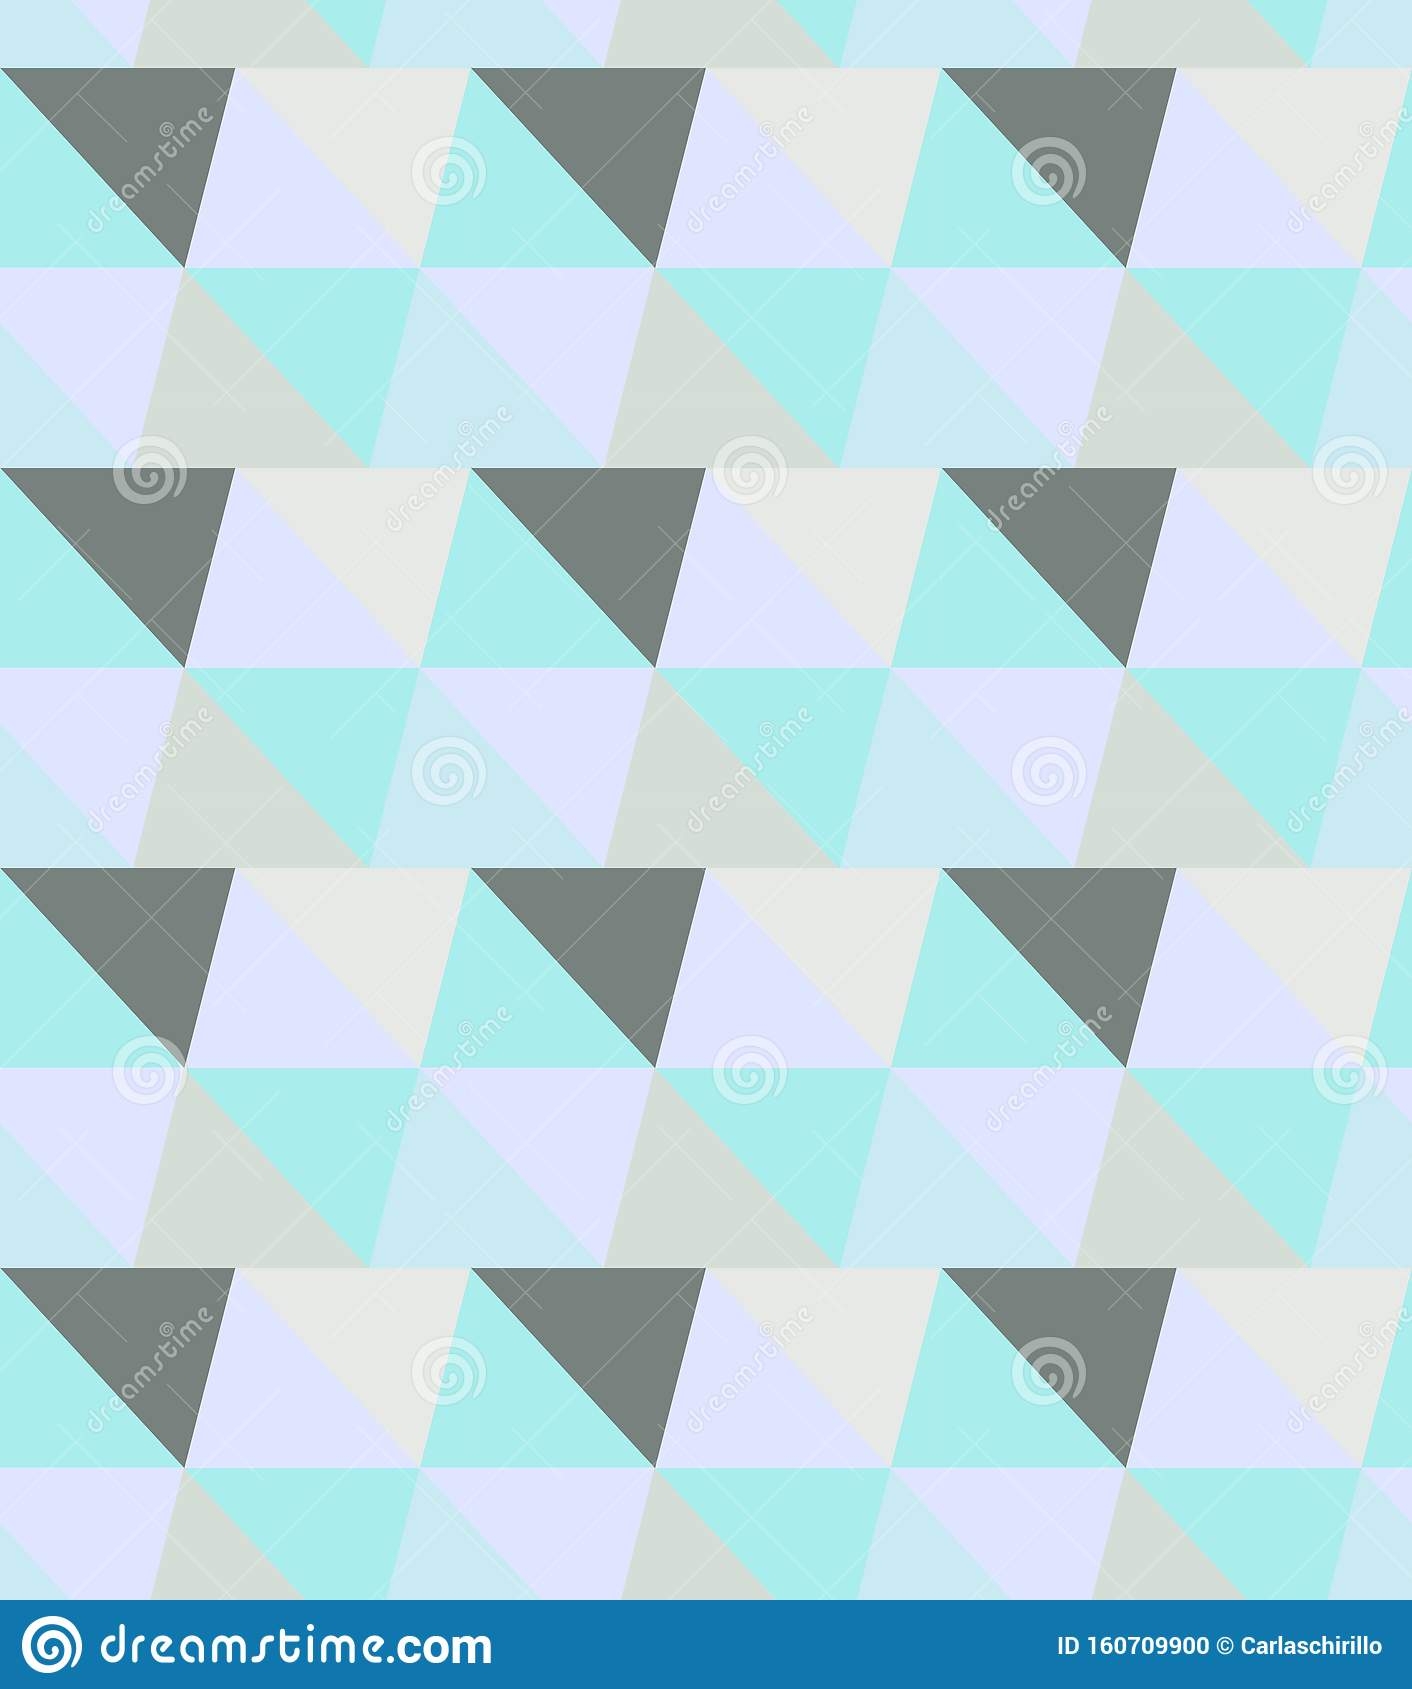 Minimal Geometric Seamless Vector Pattern In Teal And Aqua ...